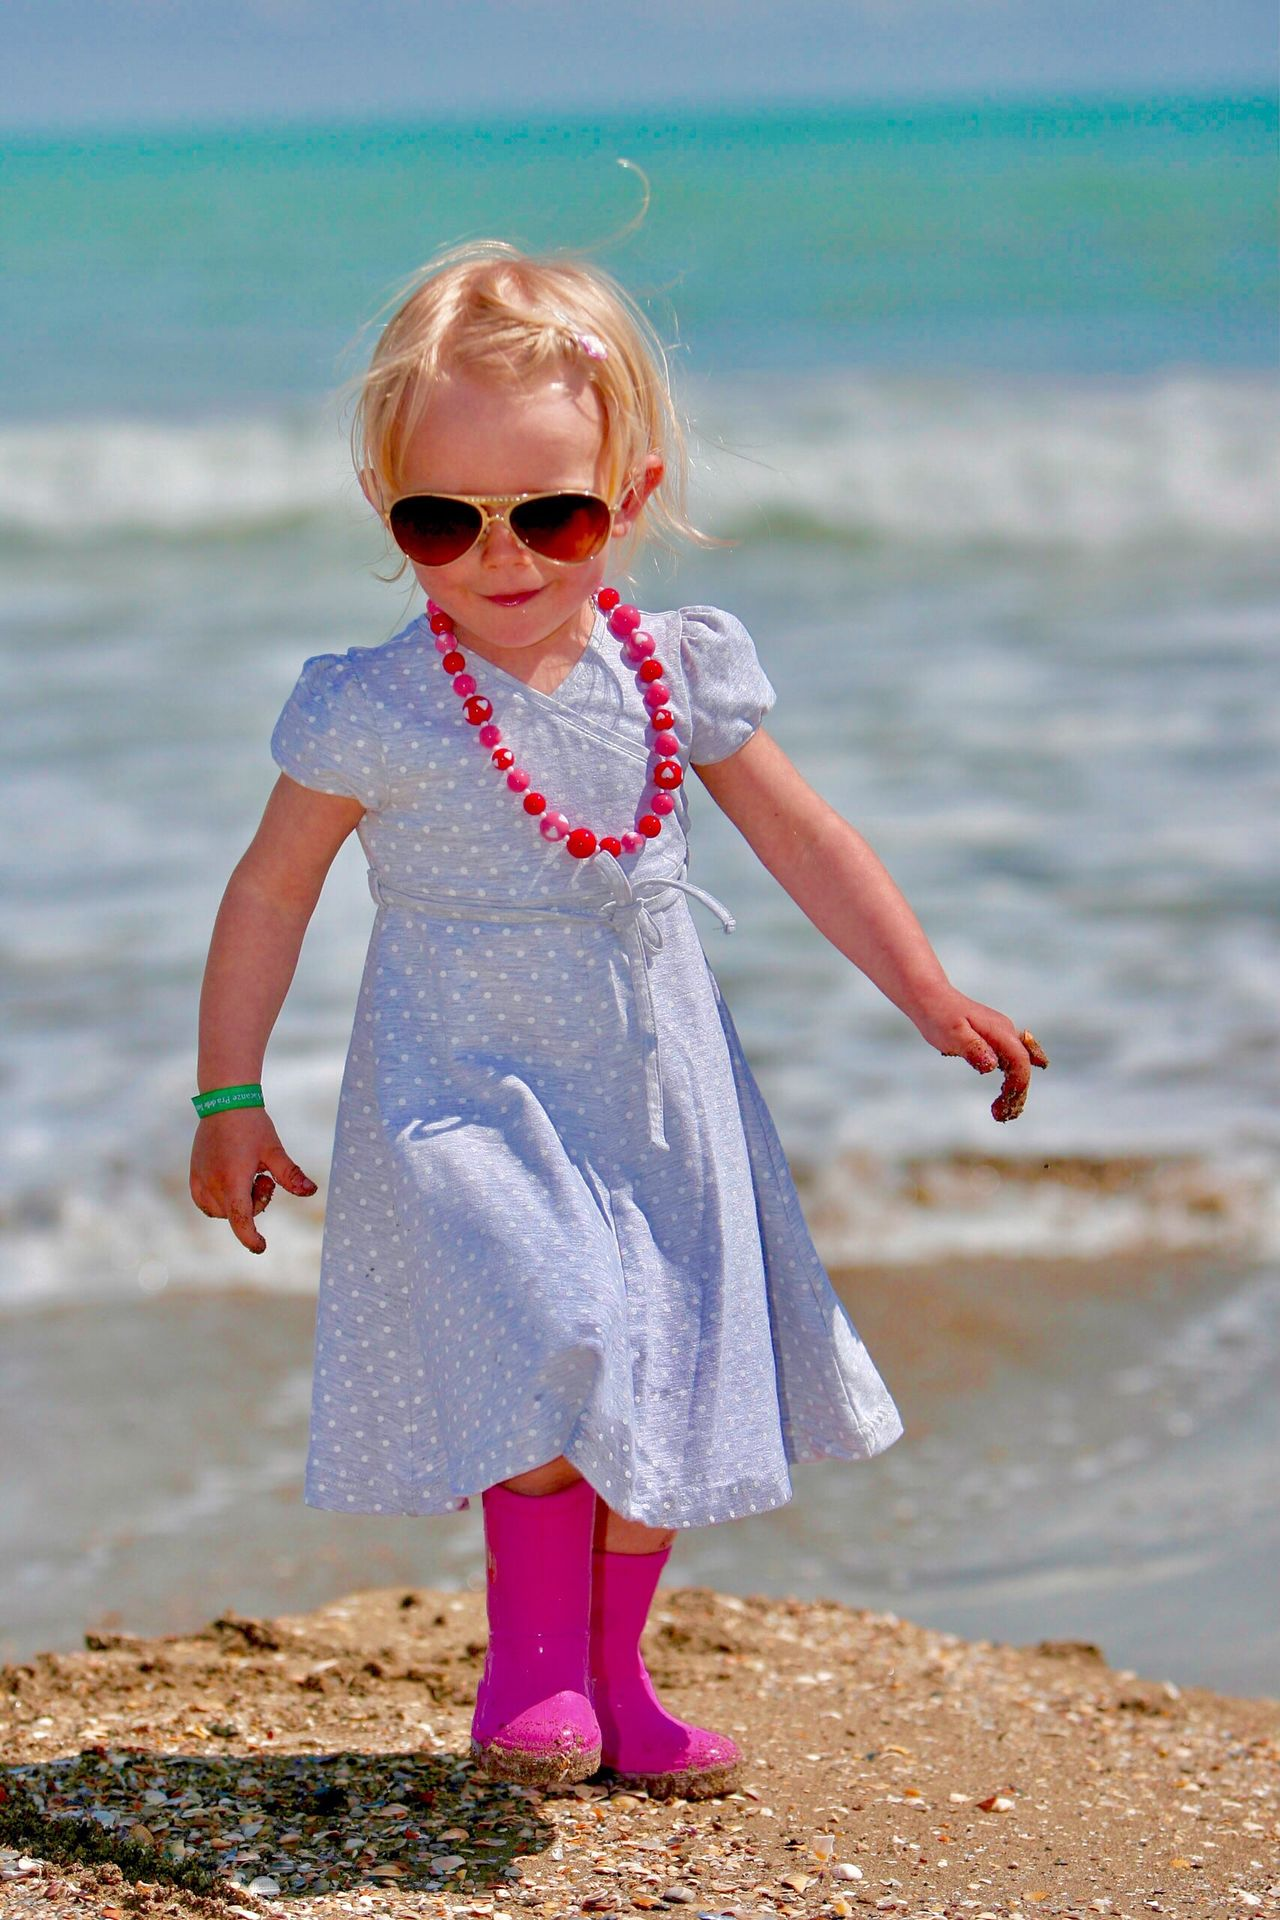 Little Polish girl of typical Slavic fashion dressed up and exceptionally dressed for the sea pink roses, pink necklace and sunglasses Sunny escaped mum for this blue dress against the turquoise Italian coast in the area of Venice Sunglasses One Person Real People Childhood Sea Sand Standing Elementary Age Leisure Activity Outdoors Fashion Cute Girl Water Lifestyles Focus On Foreground Front View Little Polish Girl Fashionable Travel Travel Destinations Italy Coastline Neighborhood Map The Great Outdoors - 2017 EyeEm Awards